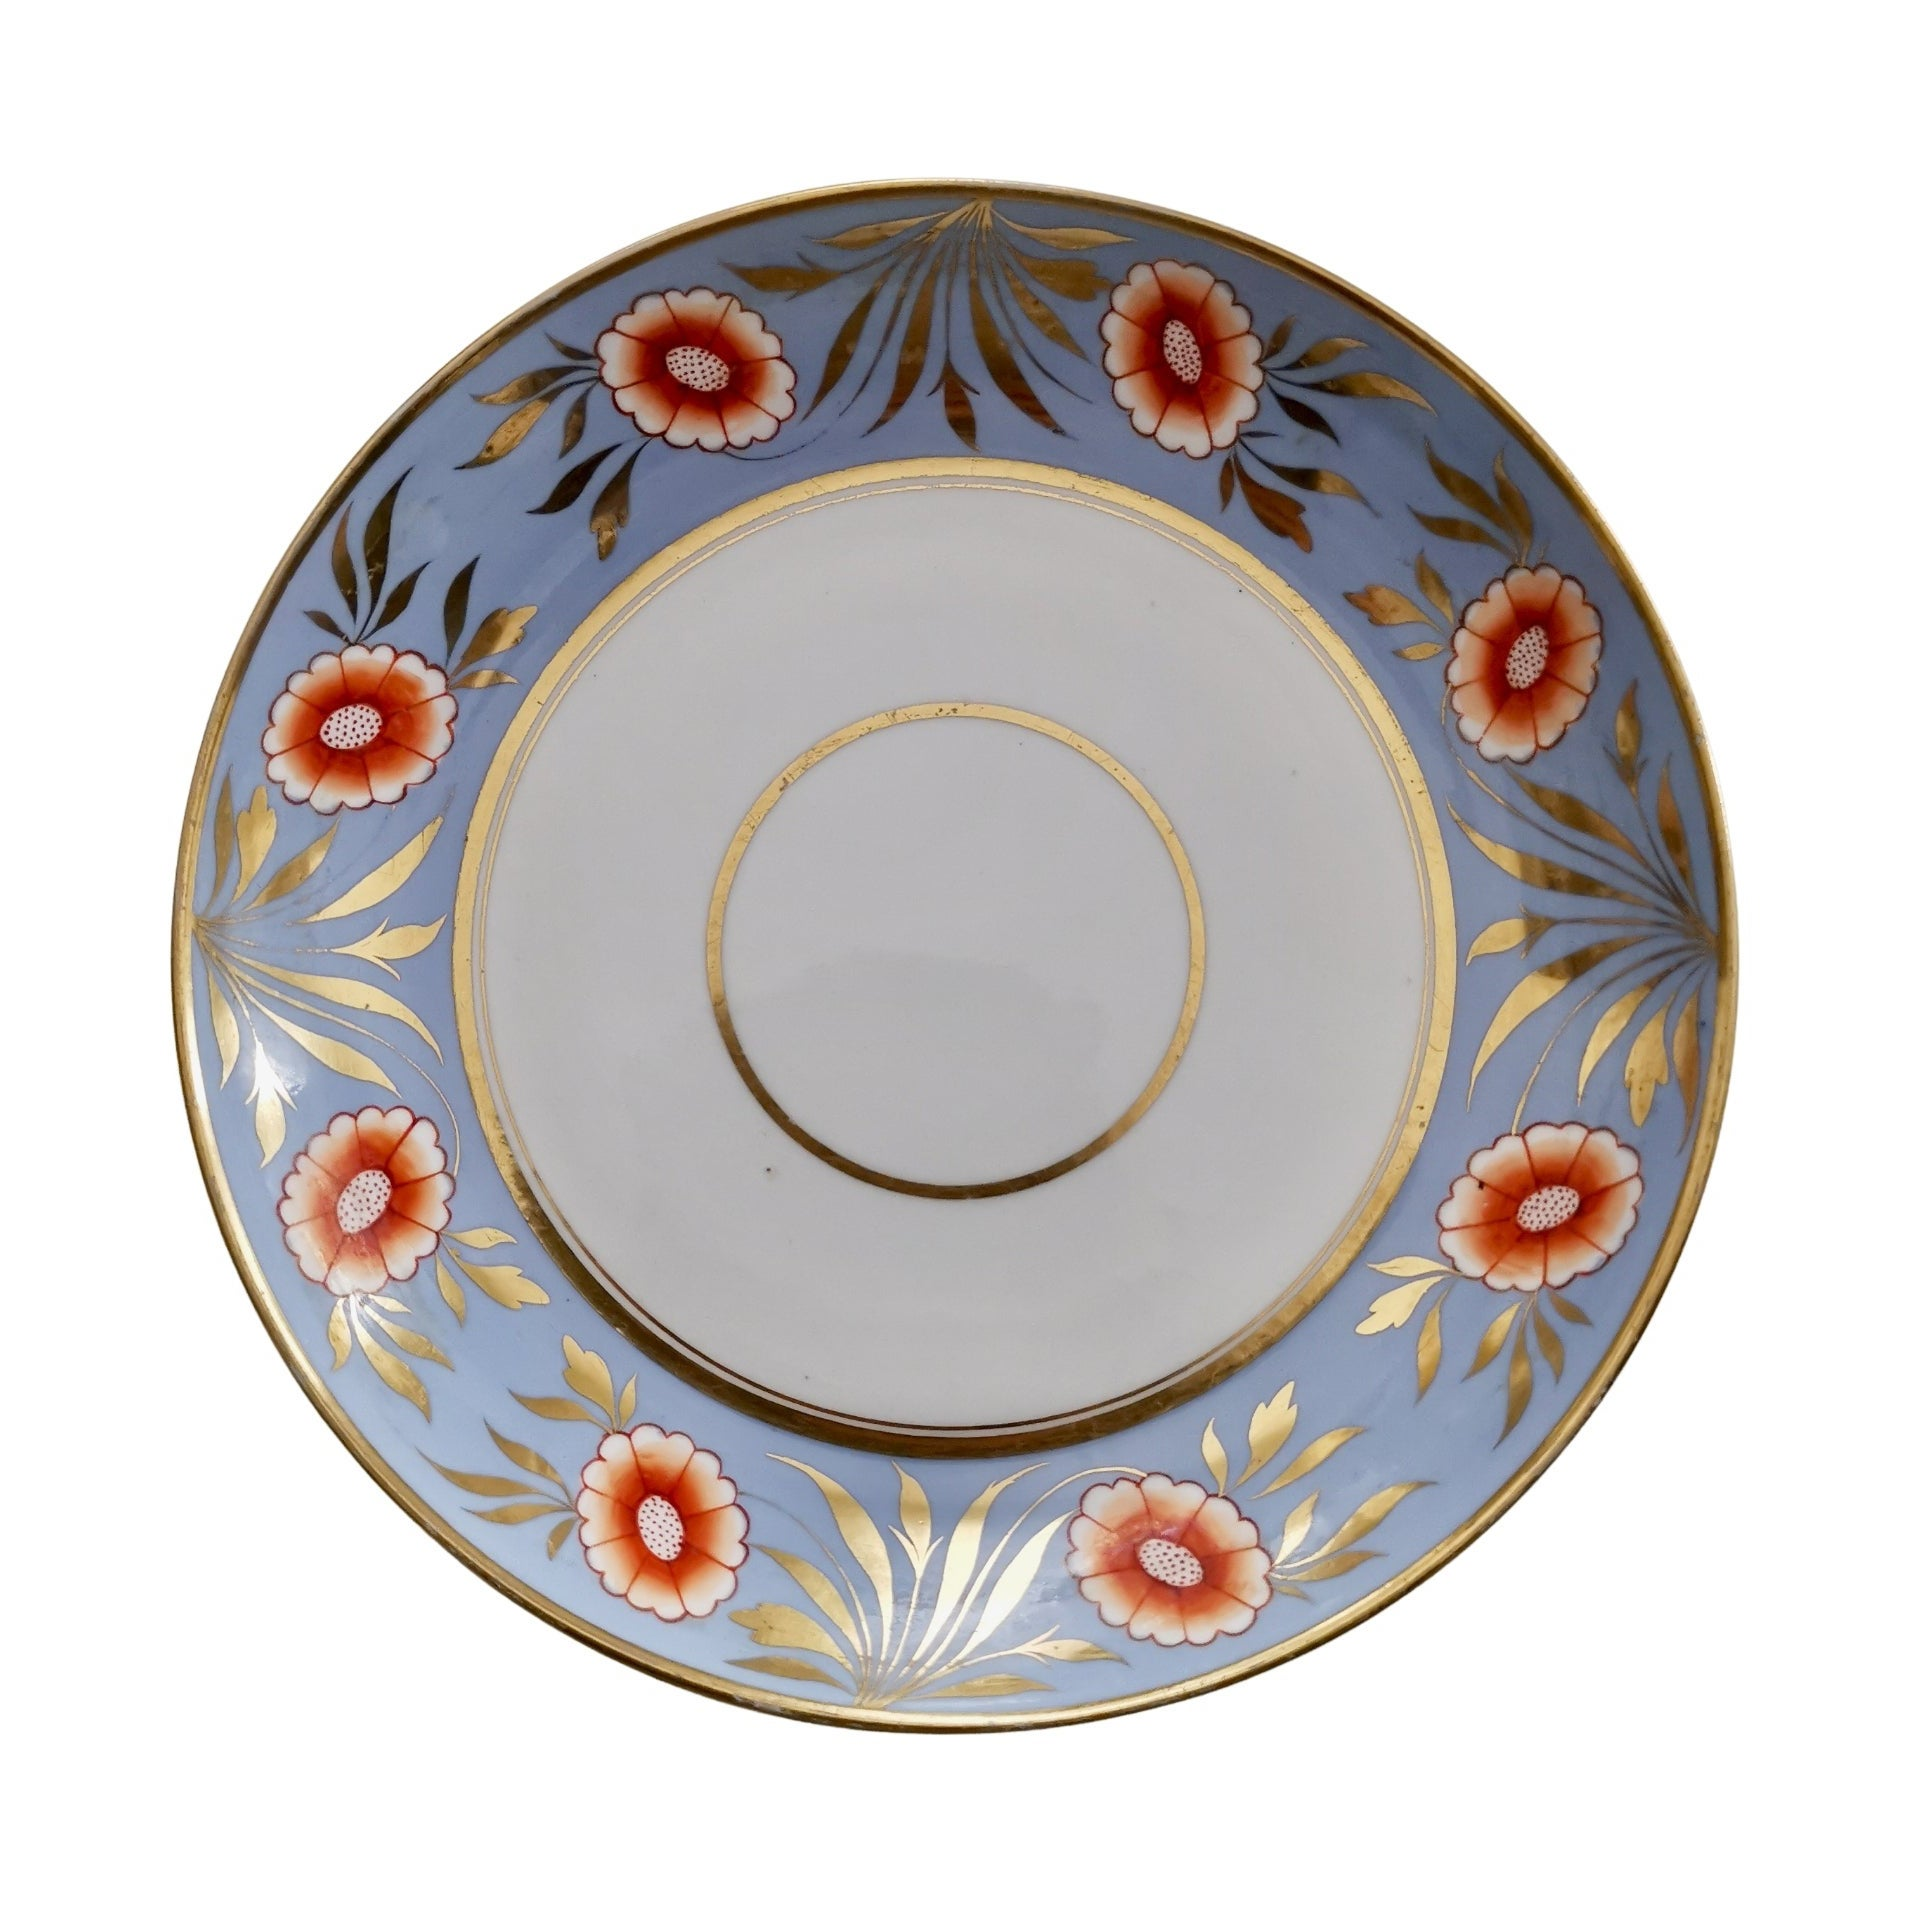 Spode Deep Porcelain Plate, Periwinkle Blue with Orange Flowers, ca 1815